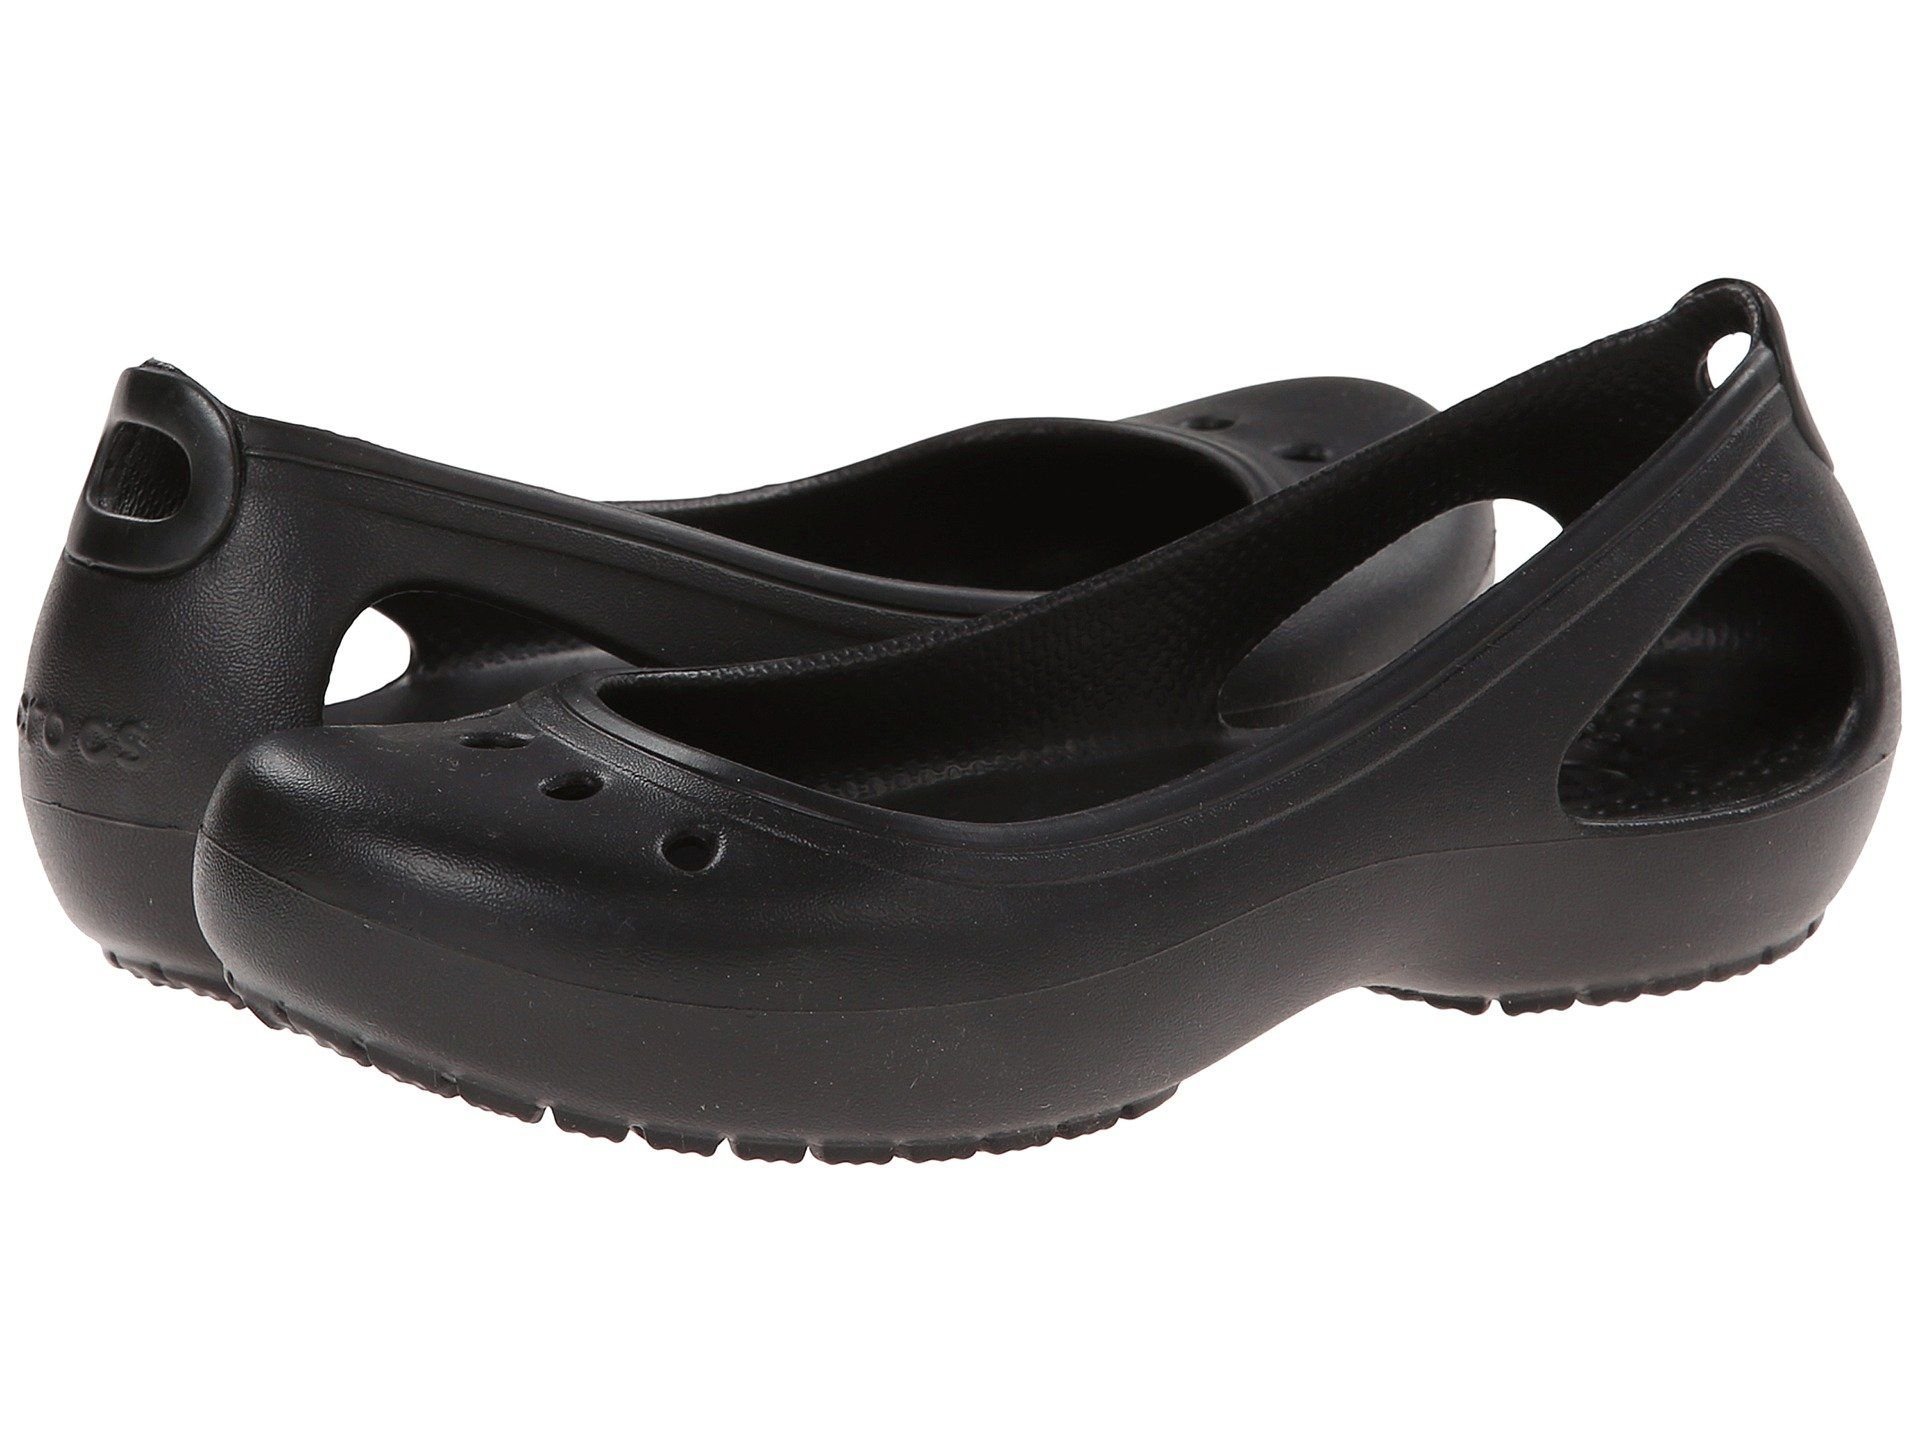 3c338fcb211220 The Crocs™ Kadee women s flat is a ballerina-inspired shoe featuring  classic form-to-foot Croslite™ construction and easy sl